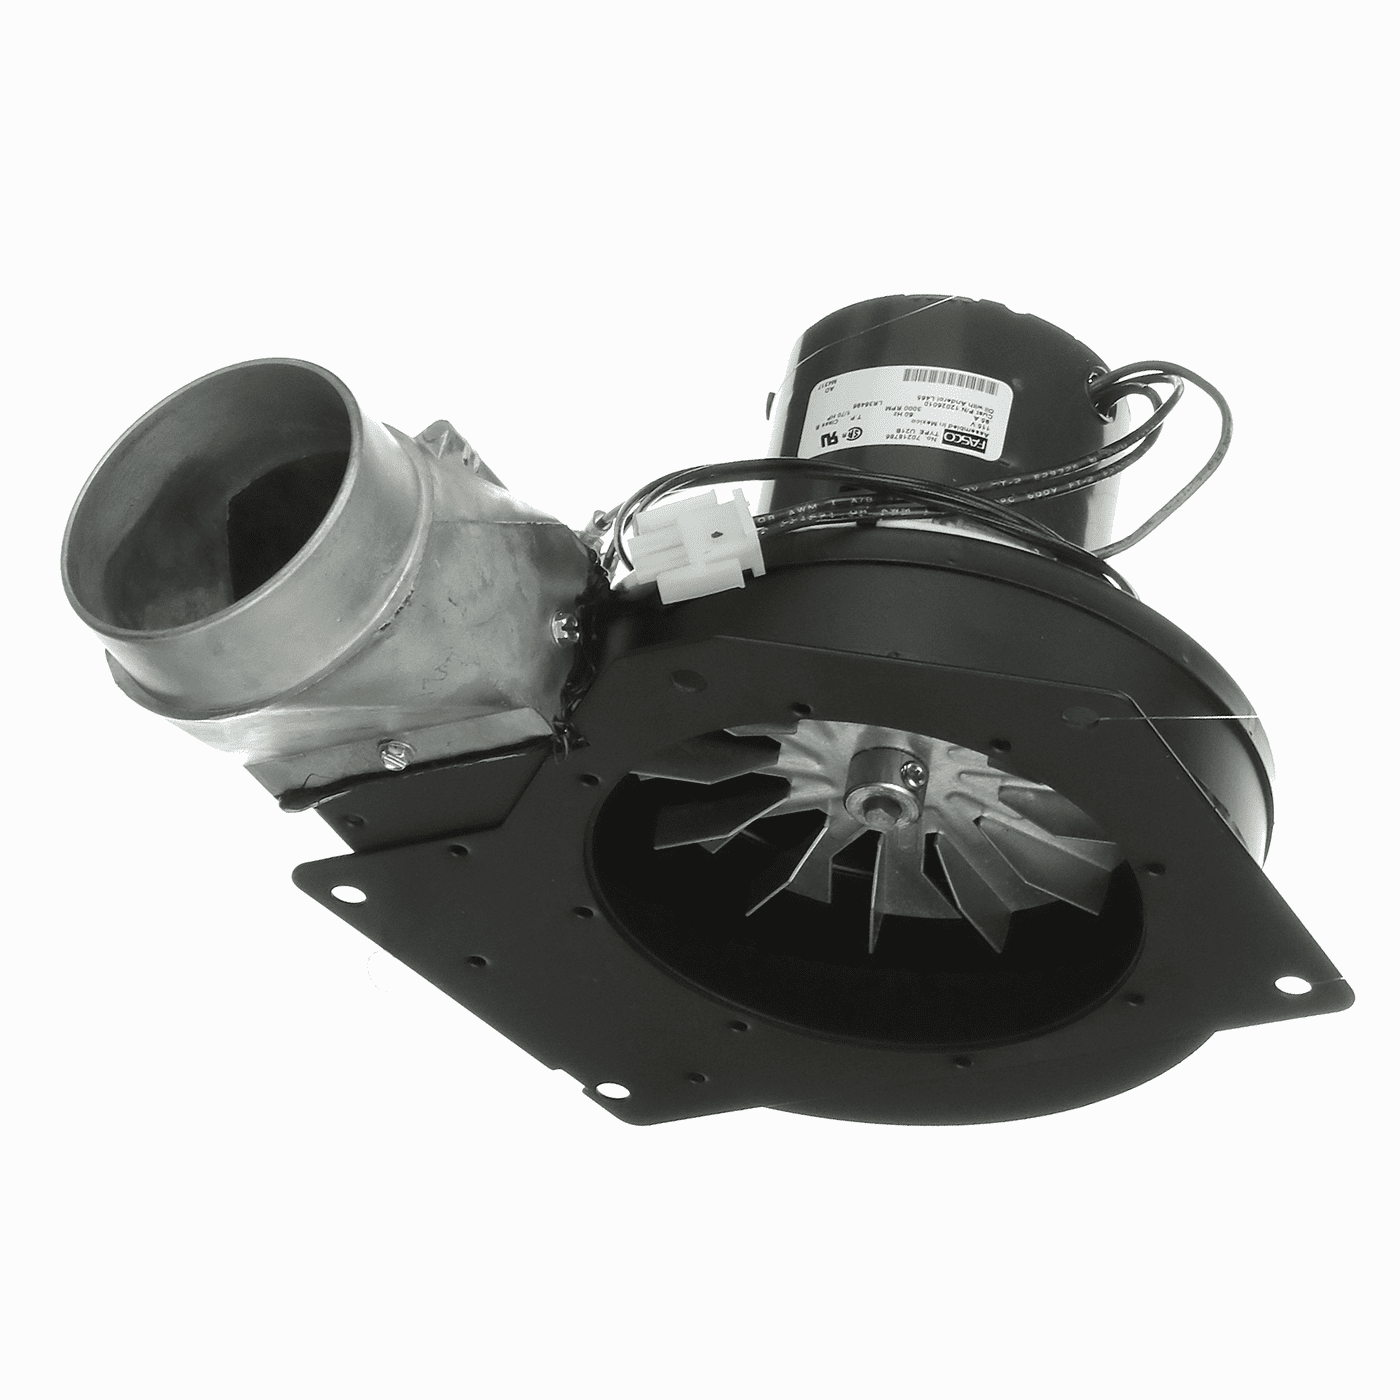 12156009 | Whitfield Exhaust Blower For All Advantage Models, 12156009